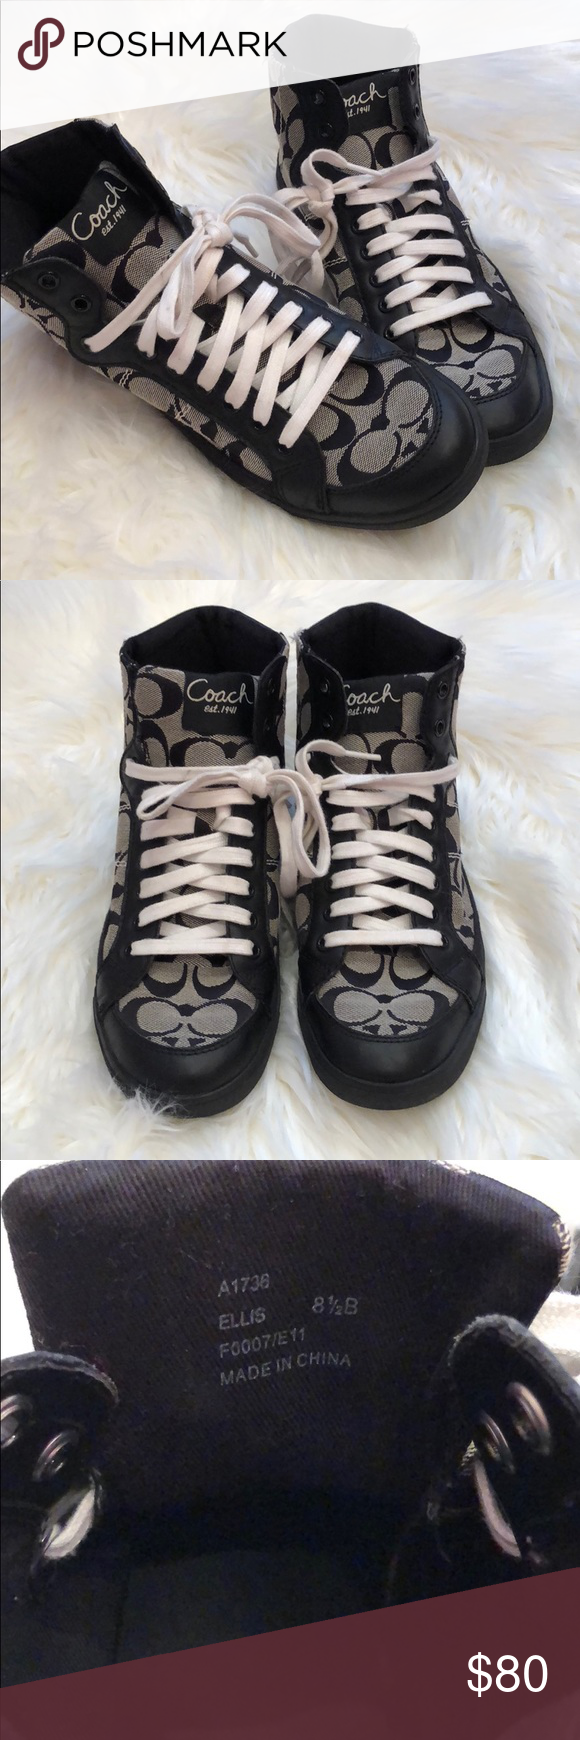 """1455b3dca1bb High Tops Like New!! ✨✨ Black Classic Coach """"C""""s print High tops with only  very slight signs of prior wear. Entertaining all offers. Coach Shoes  Sneakers"""